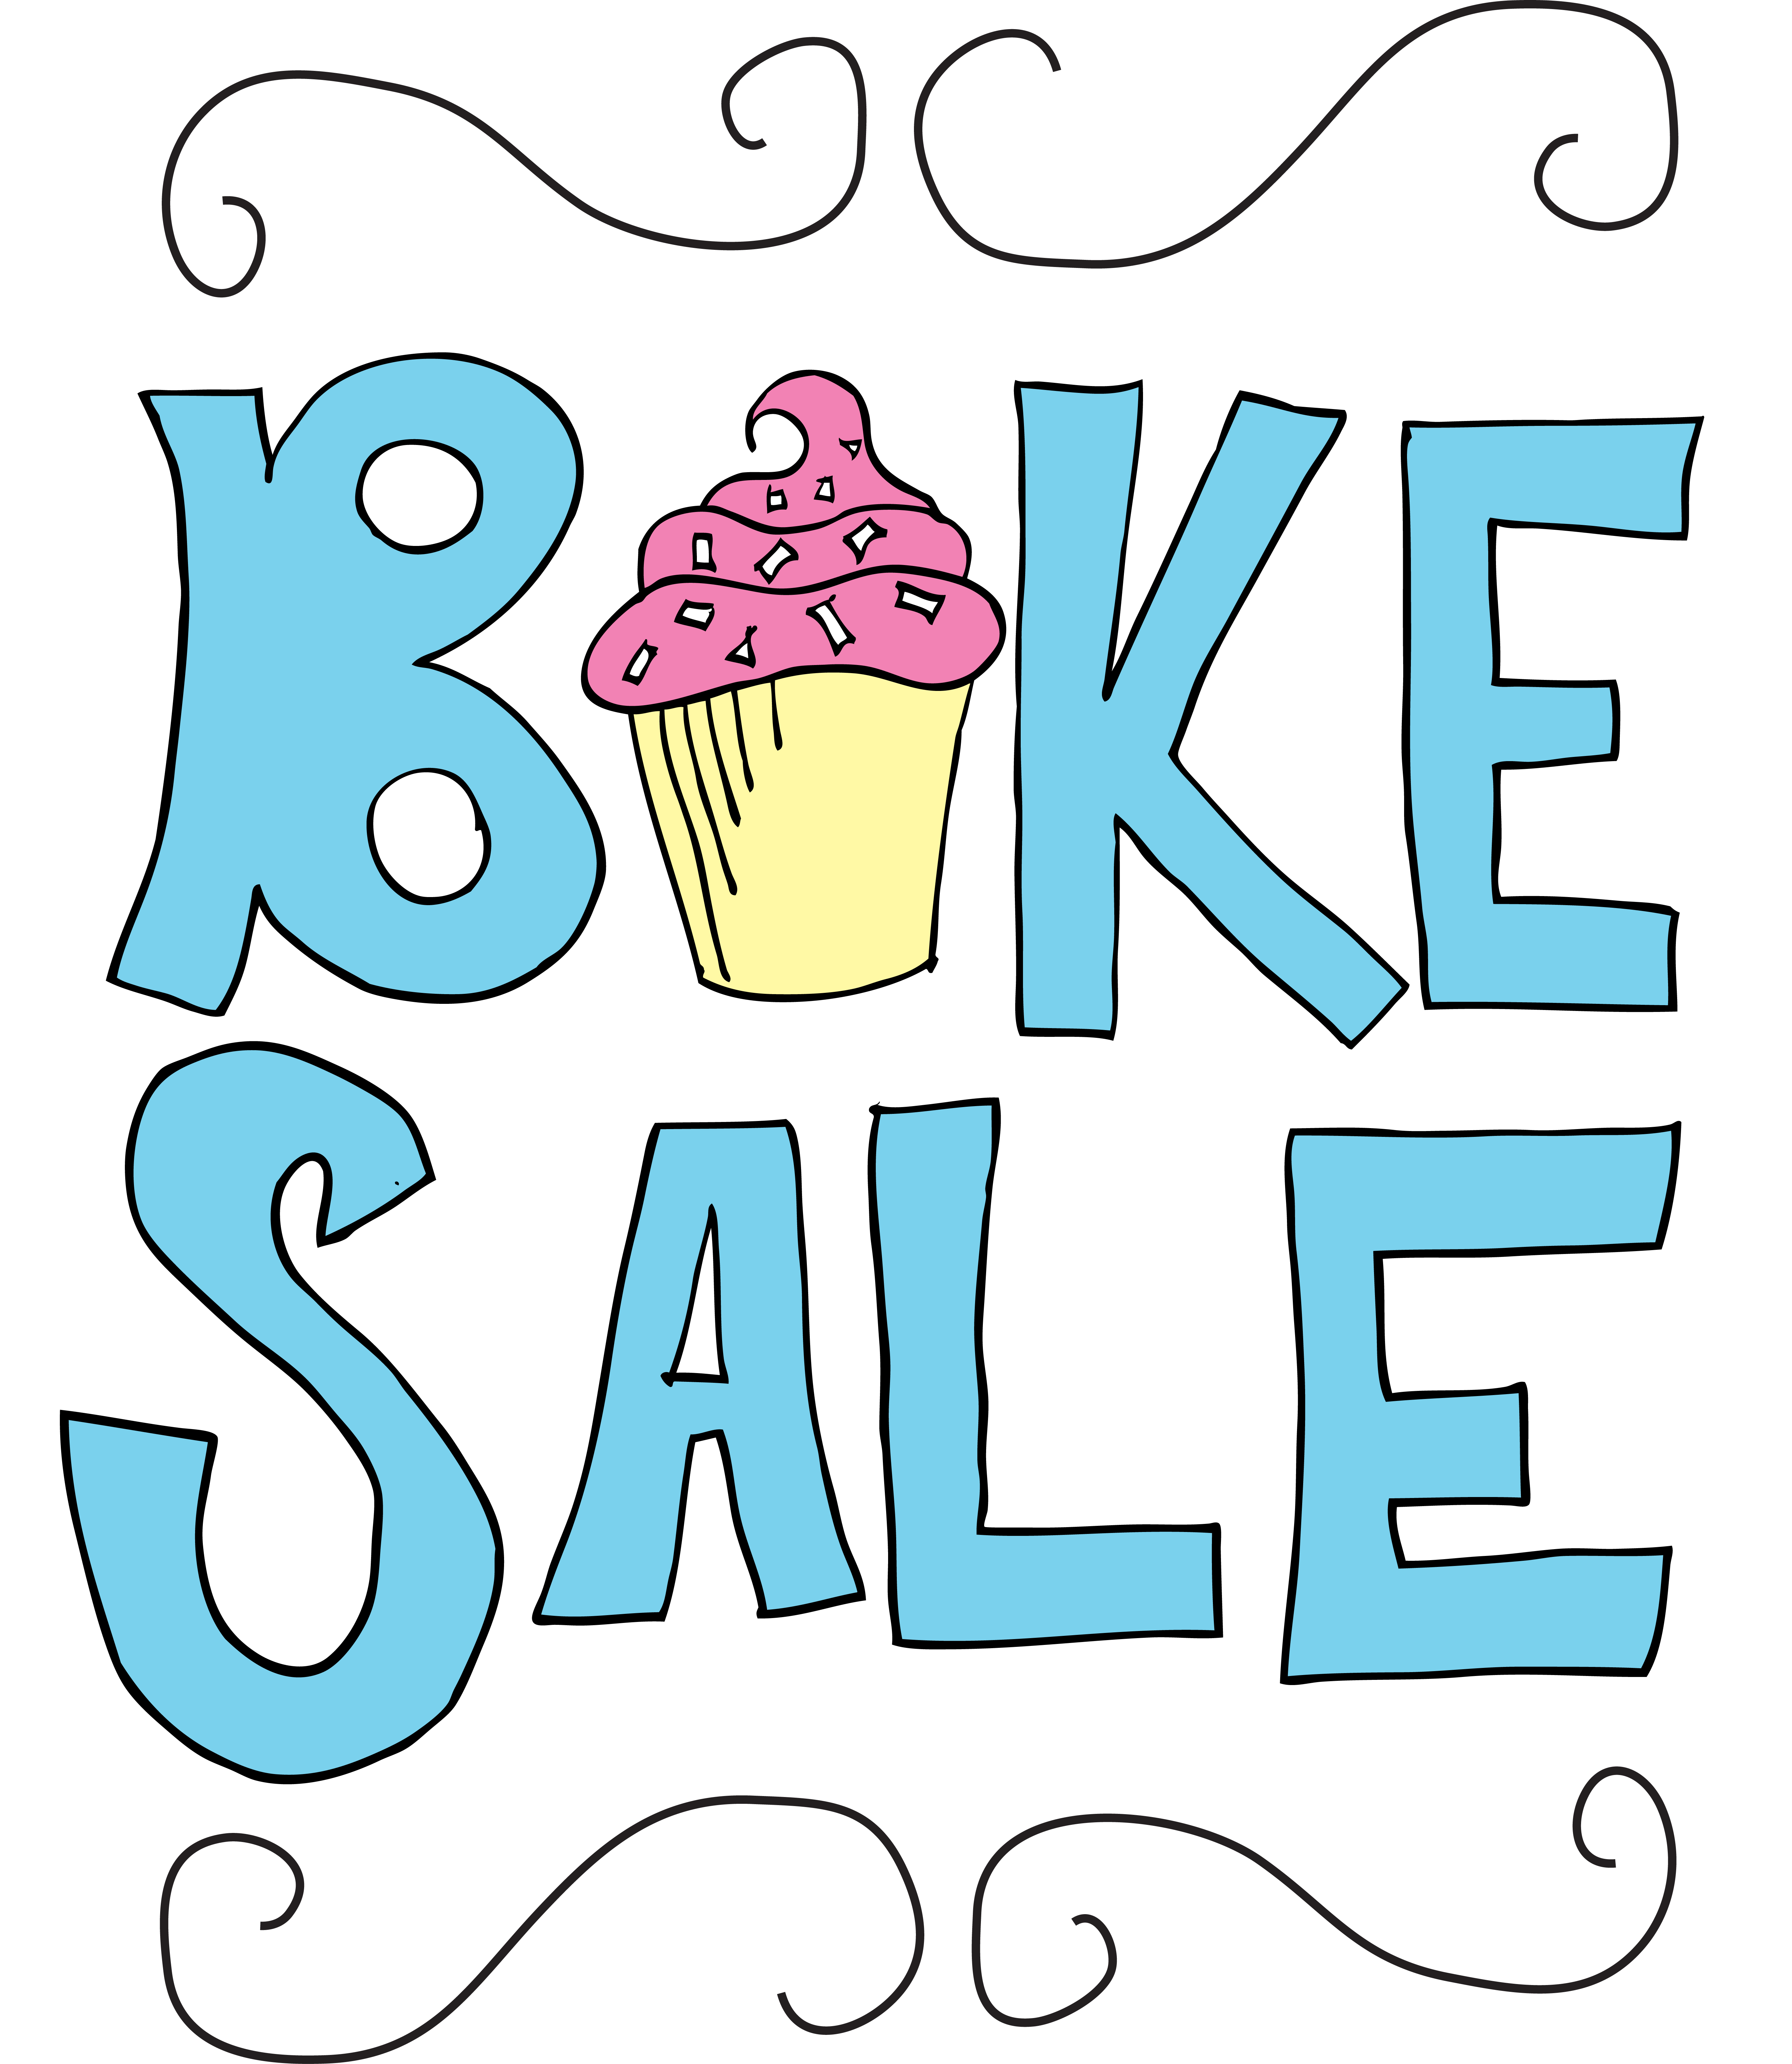 11 Bake Sale Icons Images.